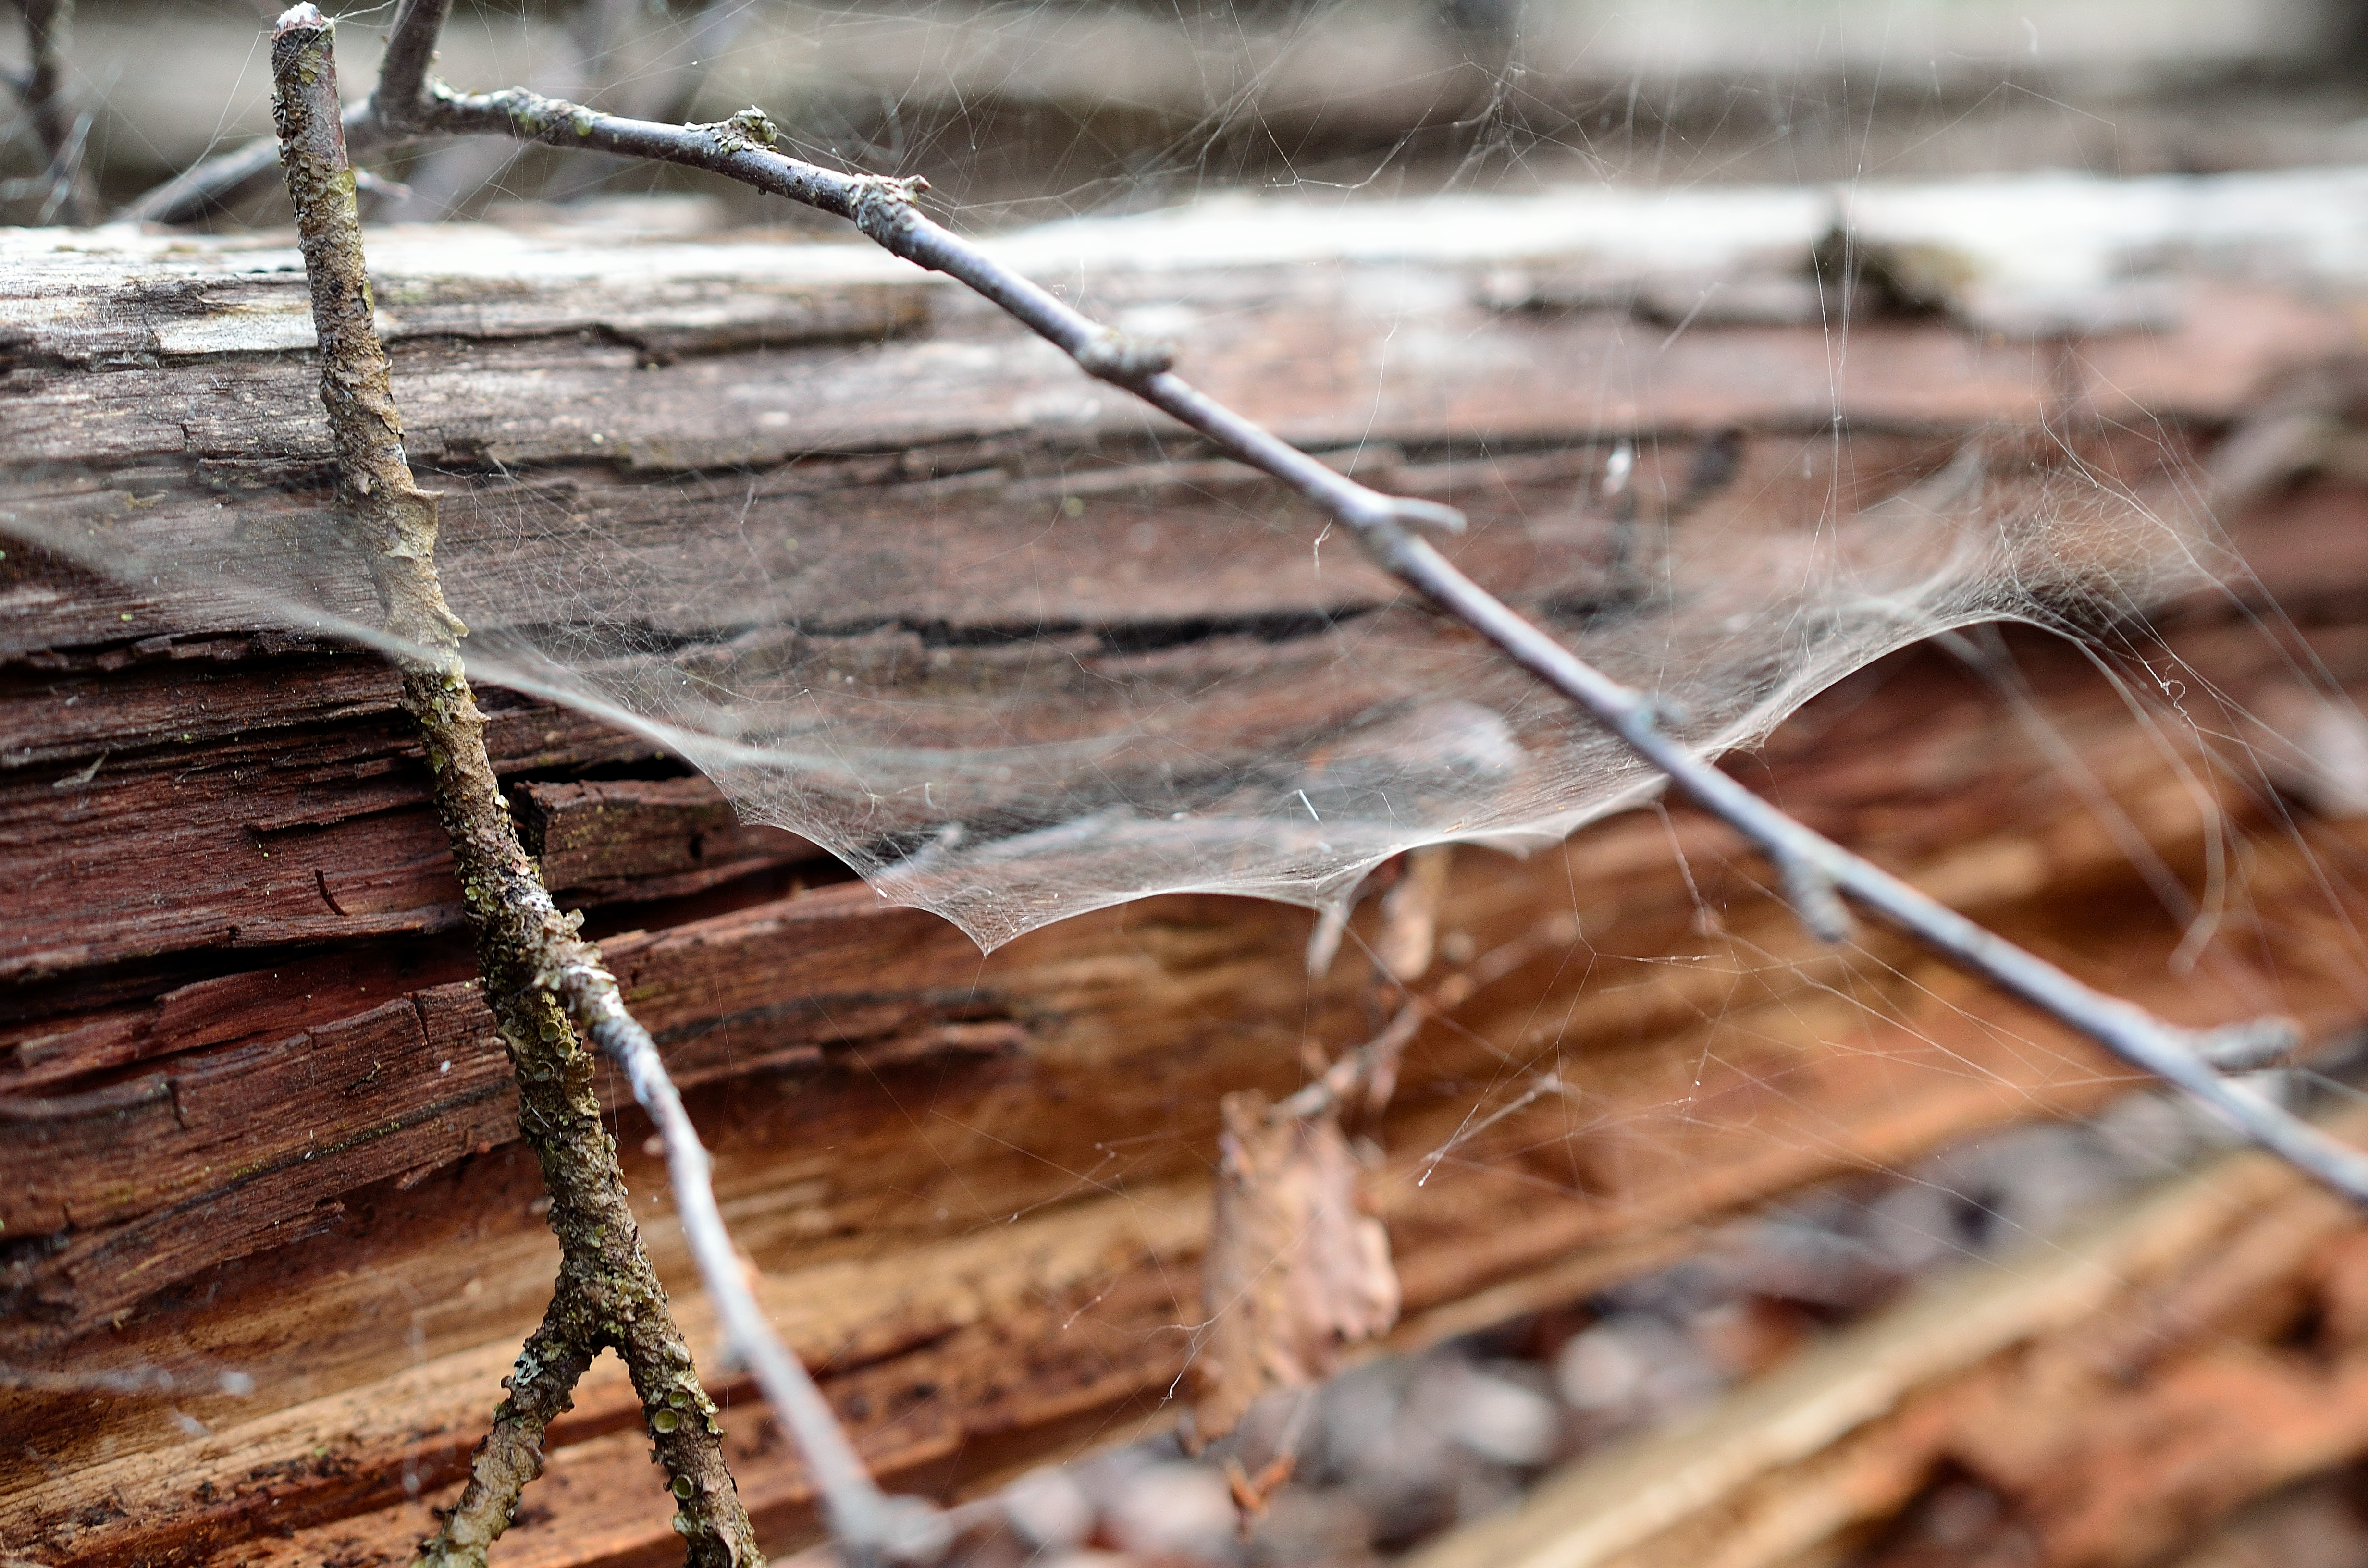 Plastic-alternative made from spider silk and wood